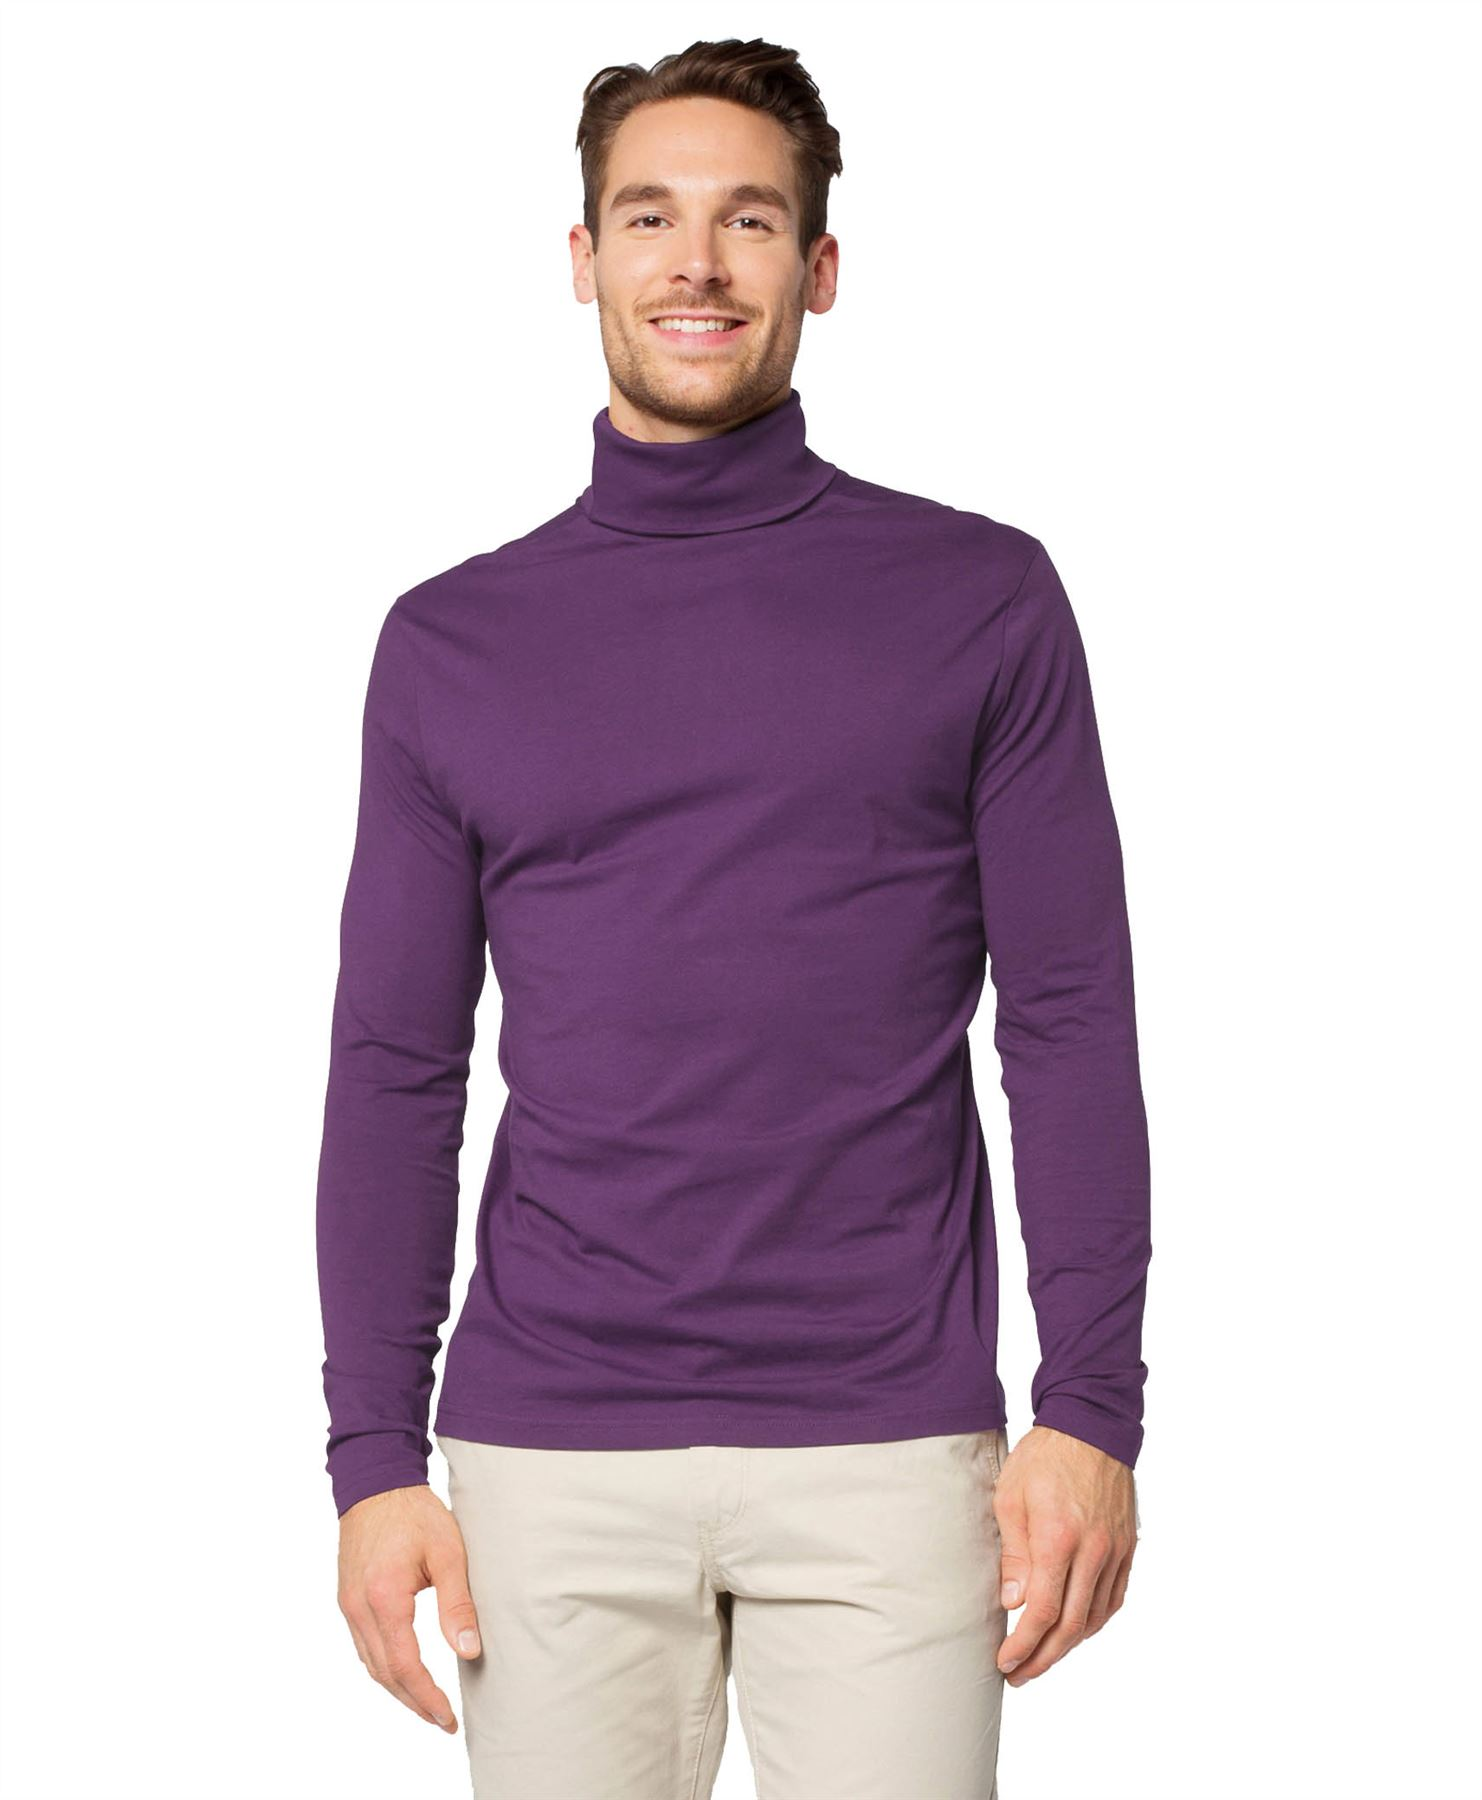 The Meribel Mens Cotton Roll Neck Top from Mountain Warehouse is an essential winter item, key for staying warm on the slopes. Made from % combed cotton, the top is a breathable garment ideal as a thermal base layer for cold climates.